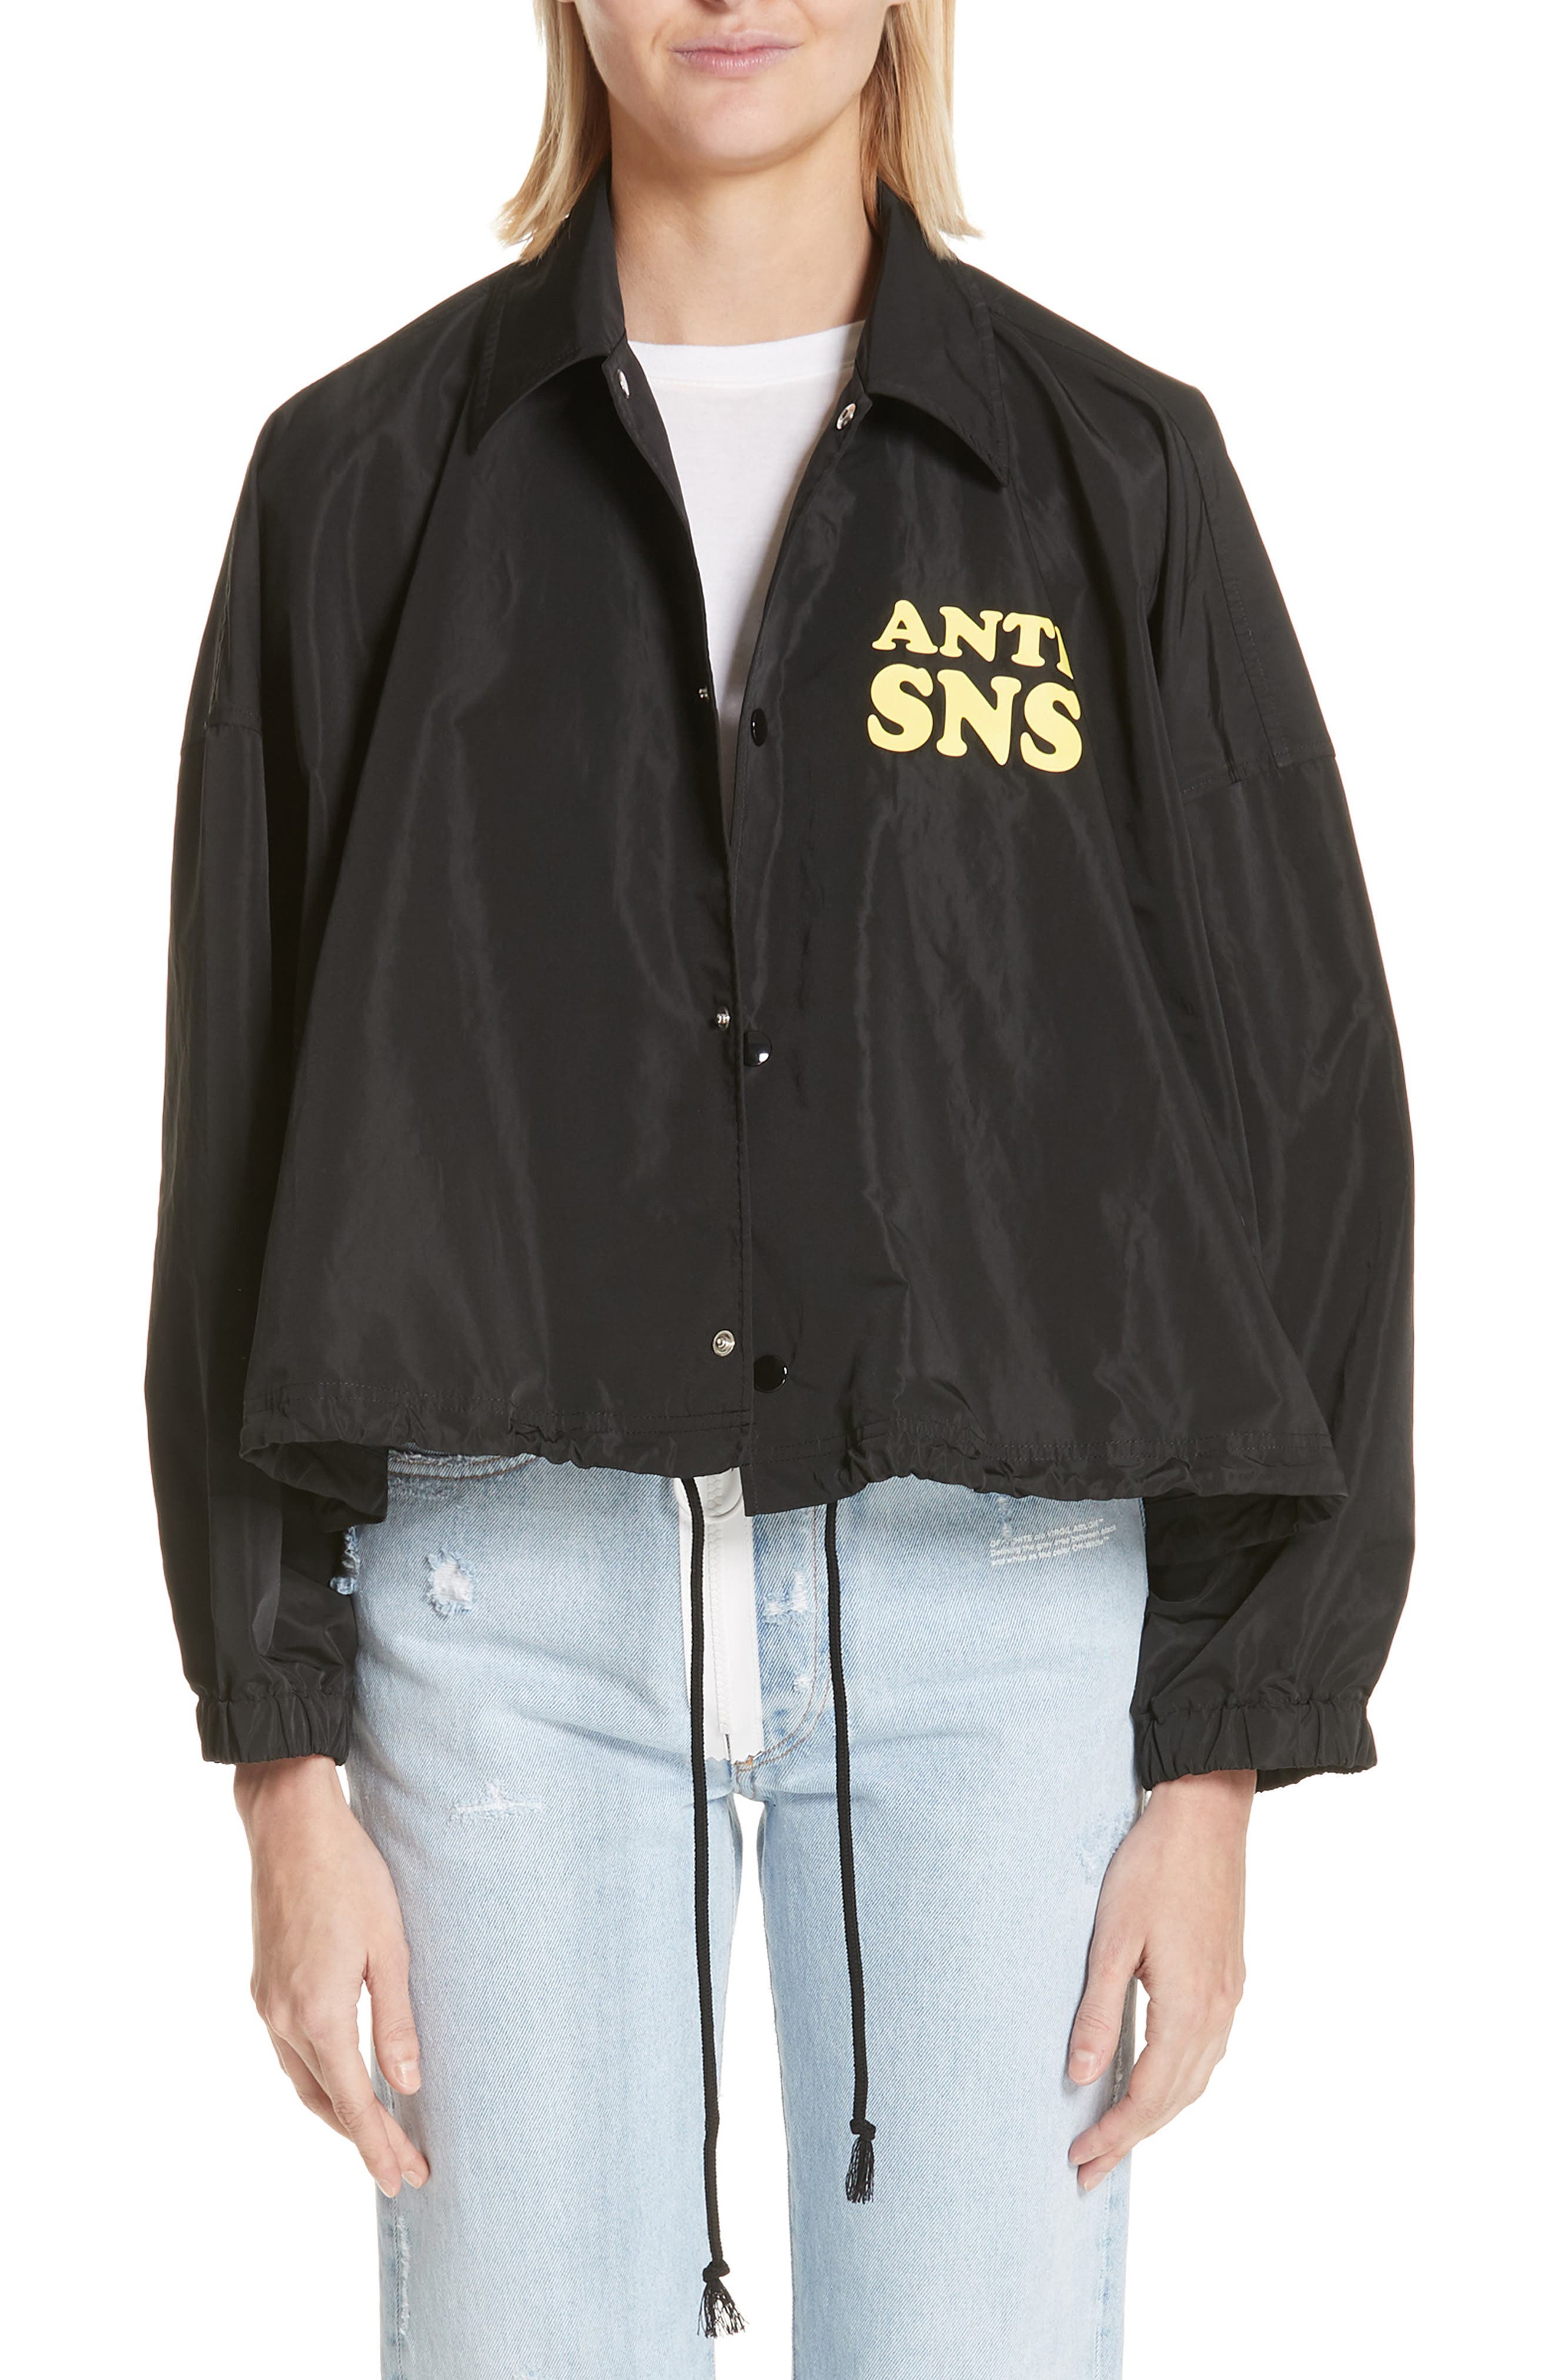 Anti SNS Jacket,                         Main,                         color, 001